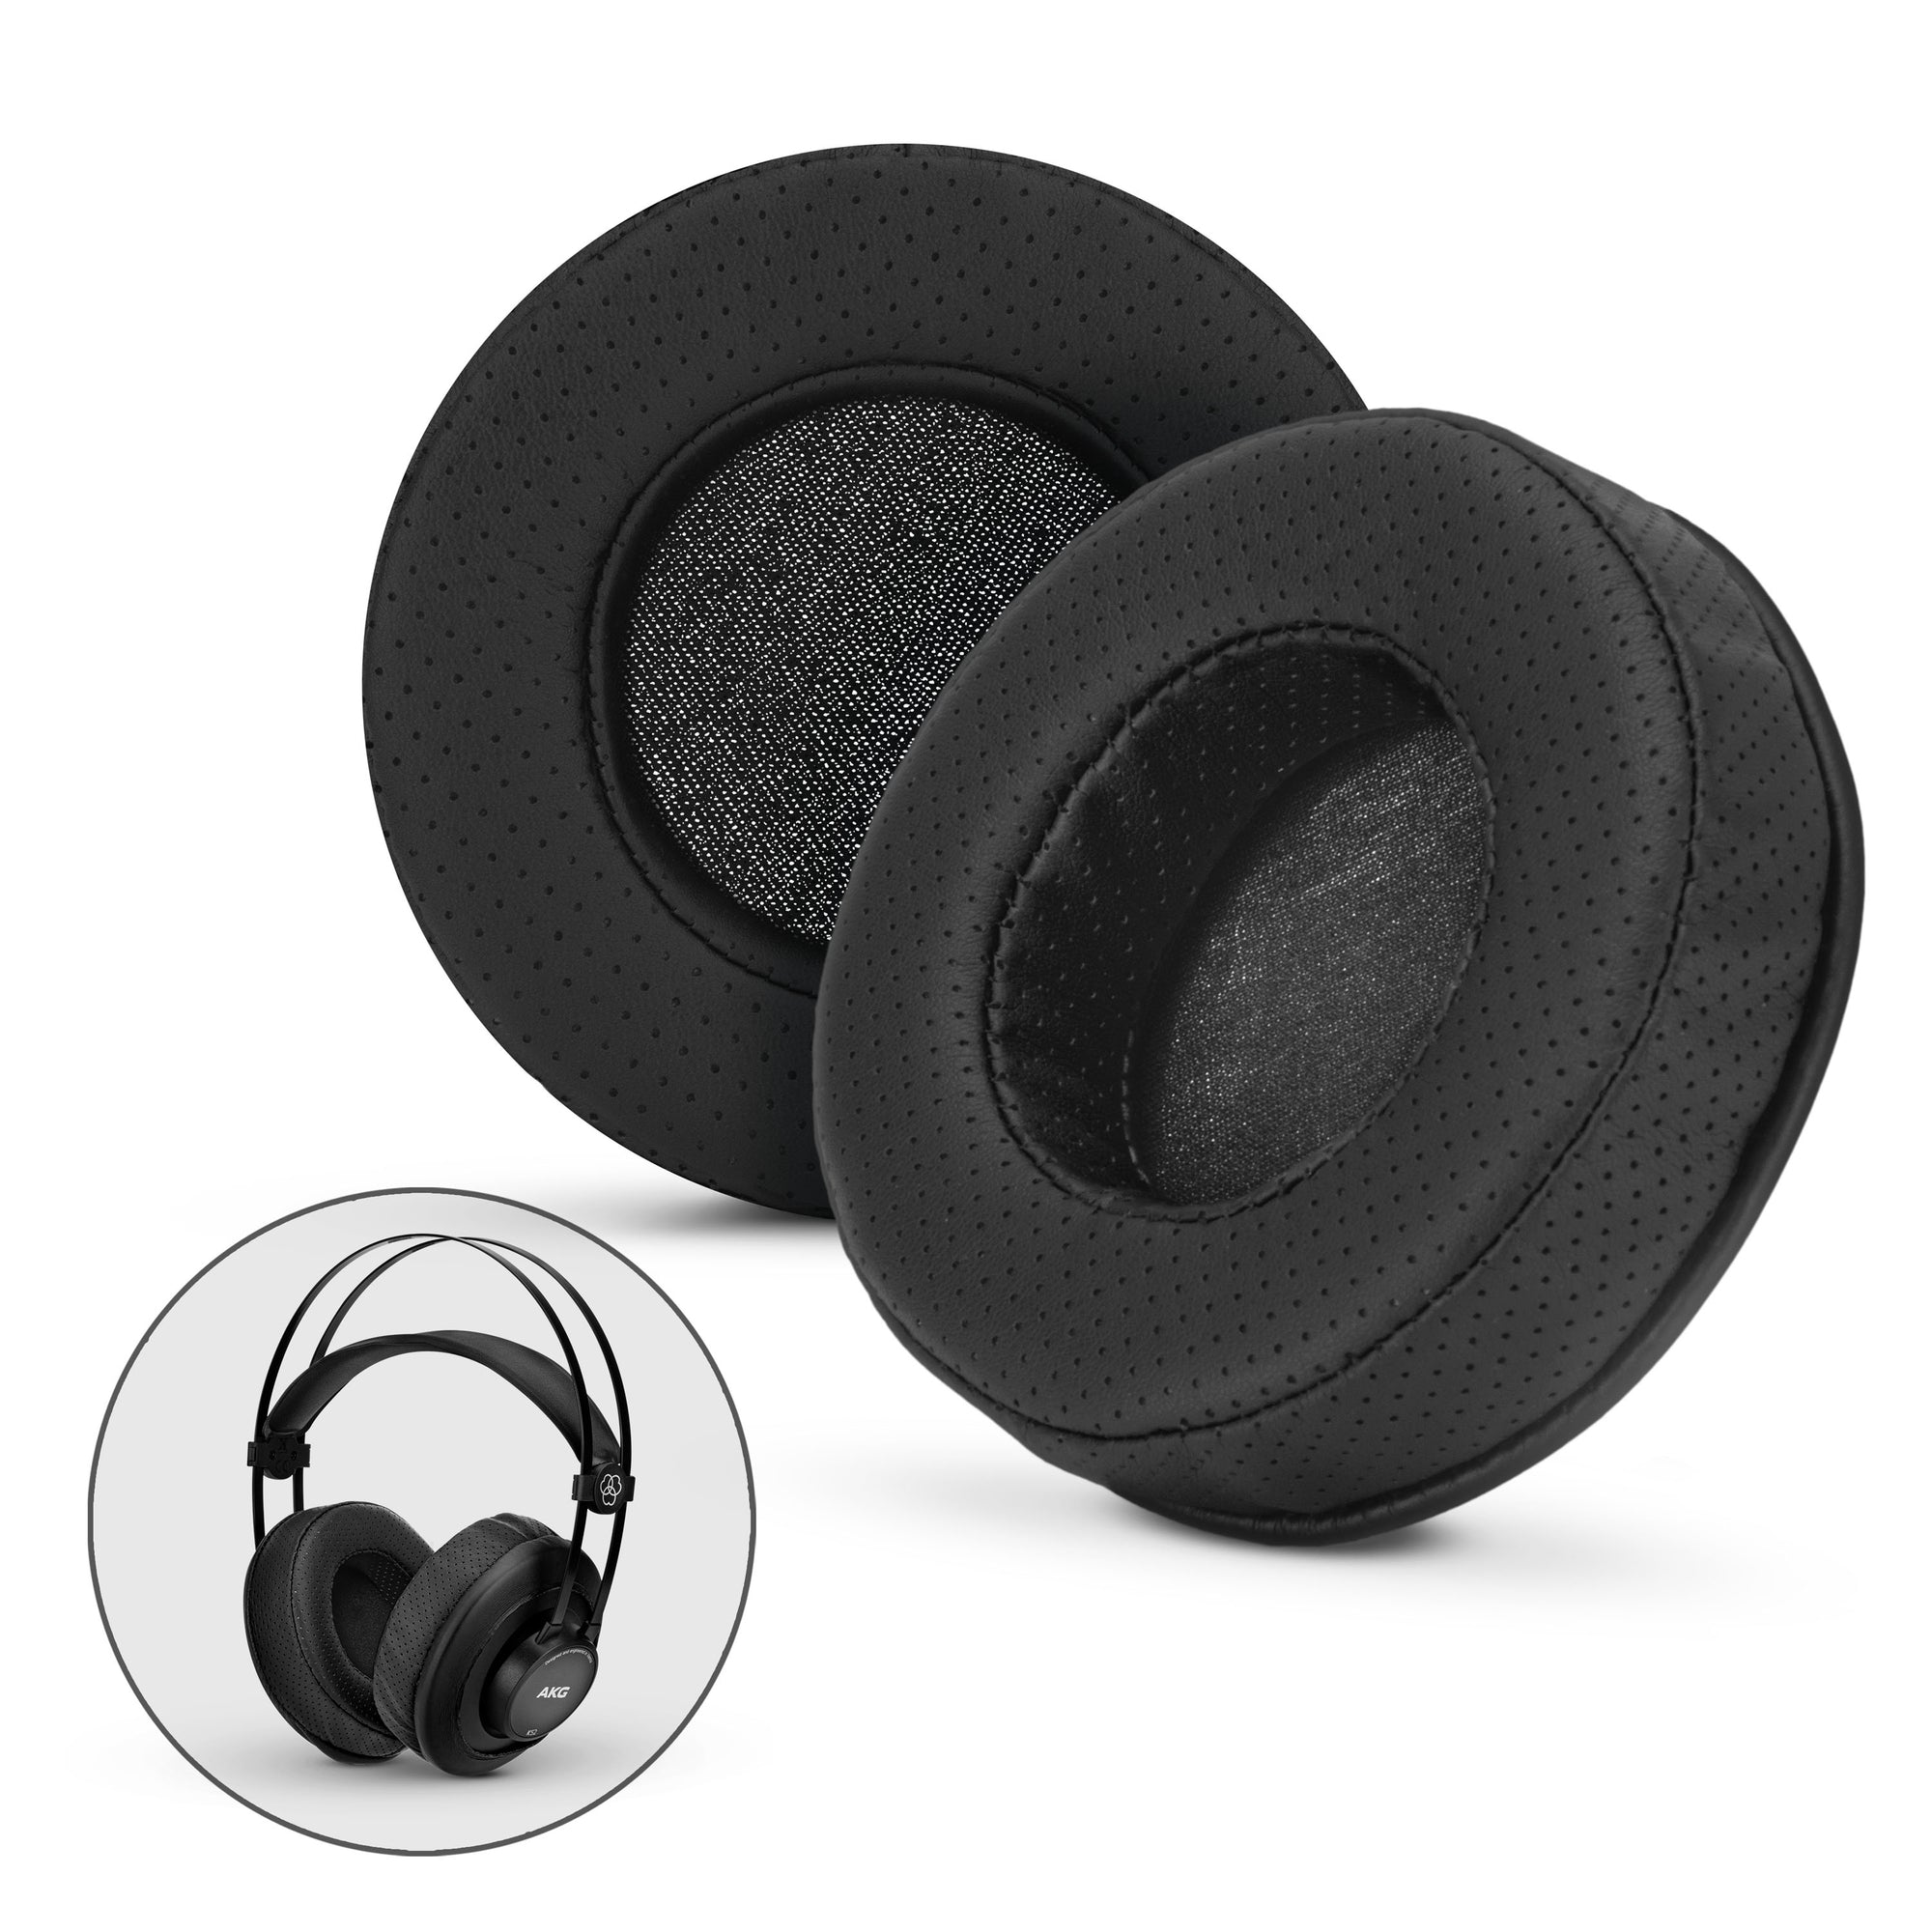 Headphone Memory Foam Earpads - Round - Perforated